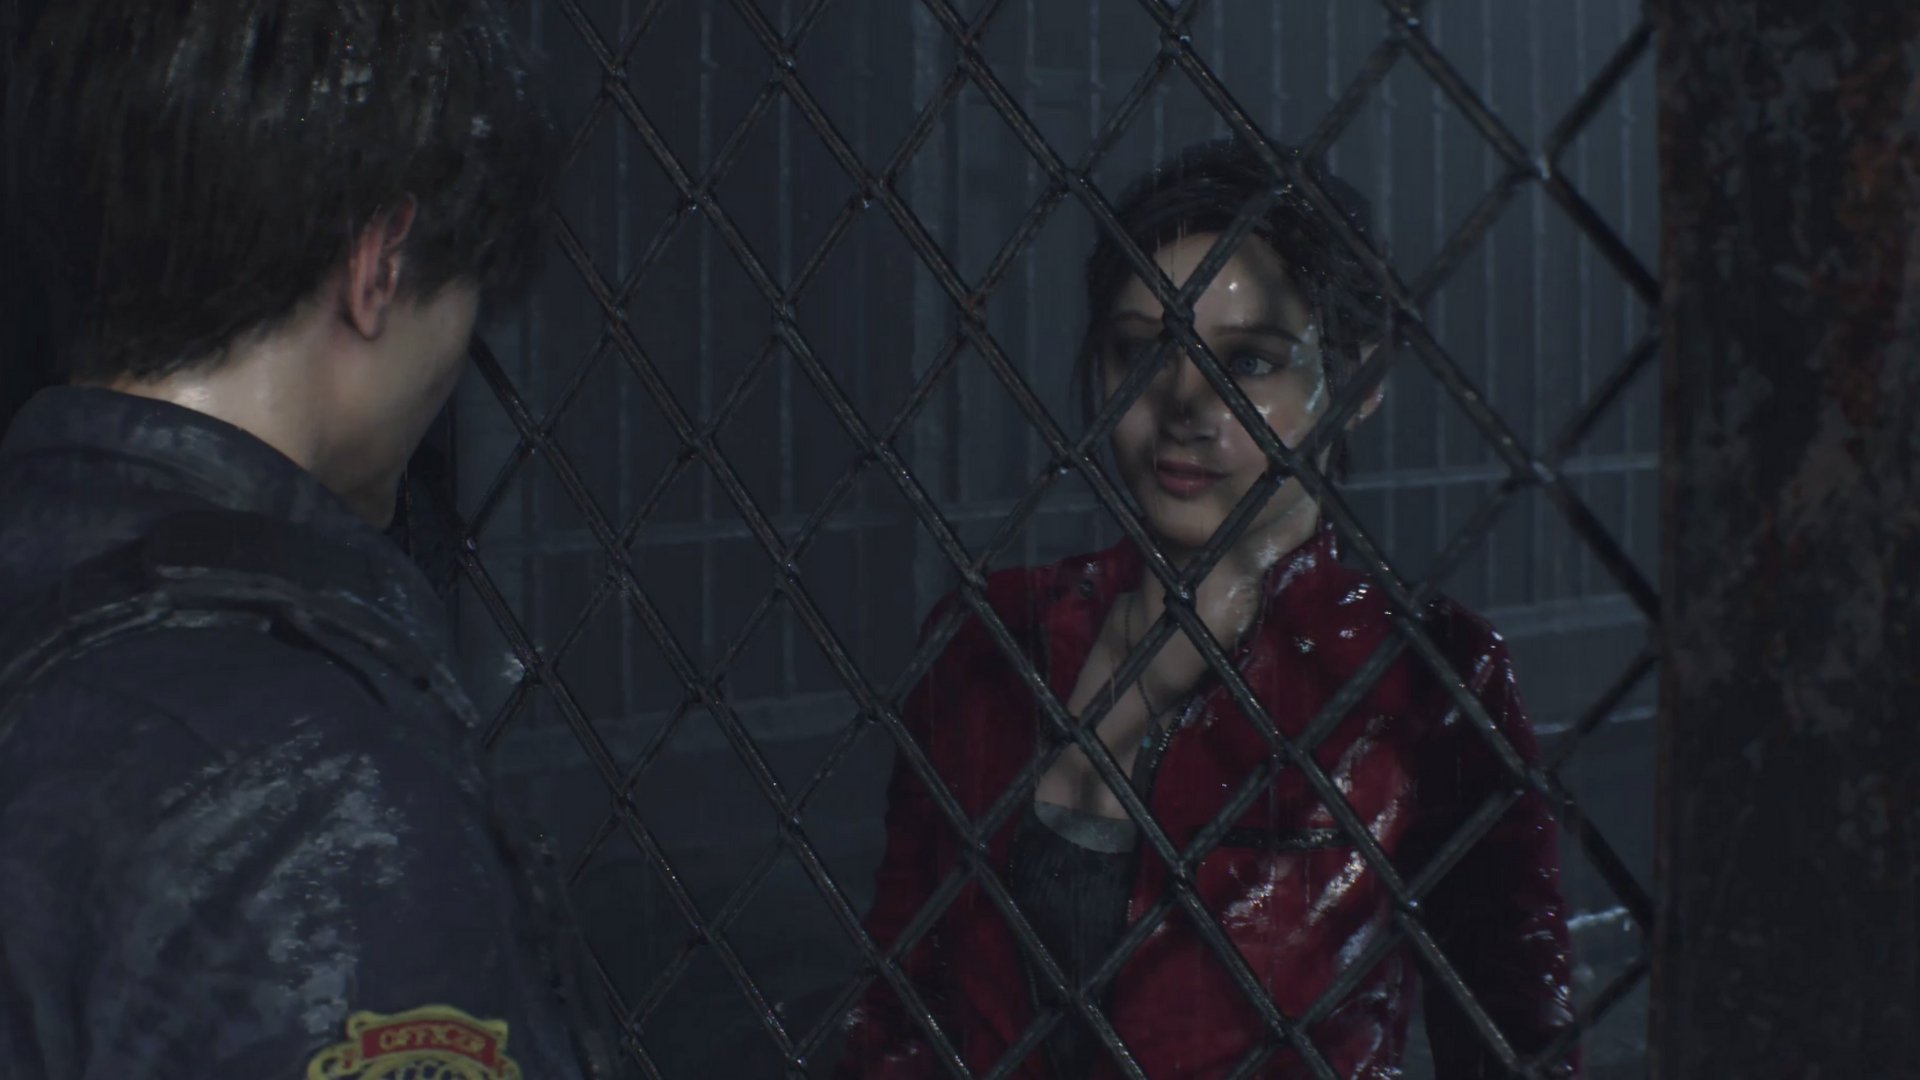 claire and leon resident evil 2 remake